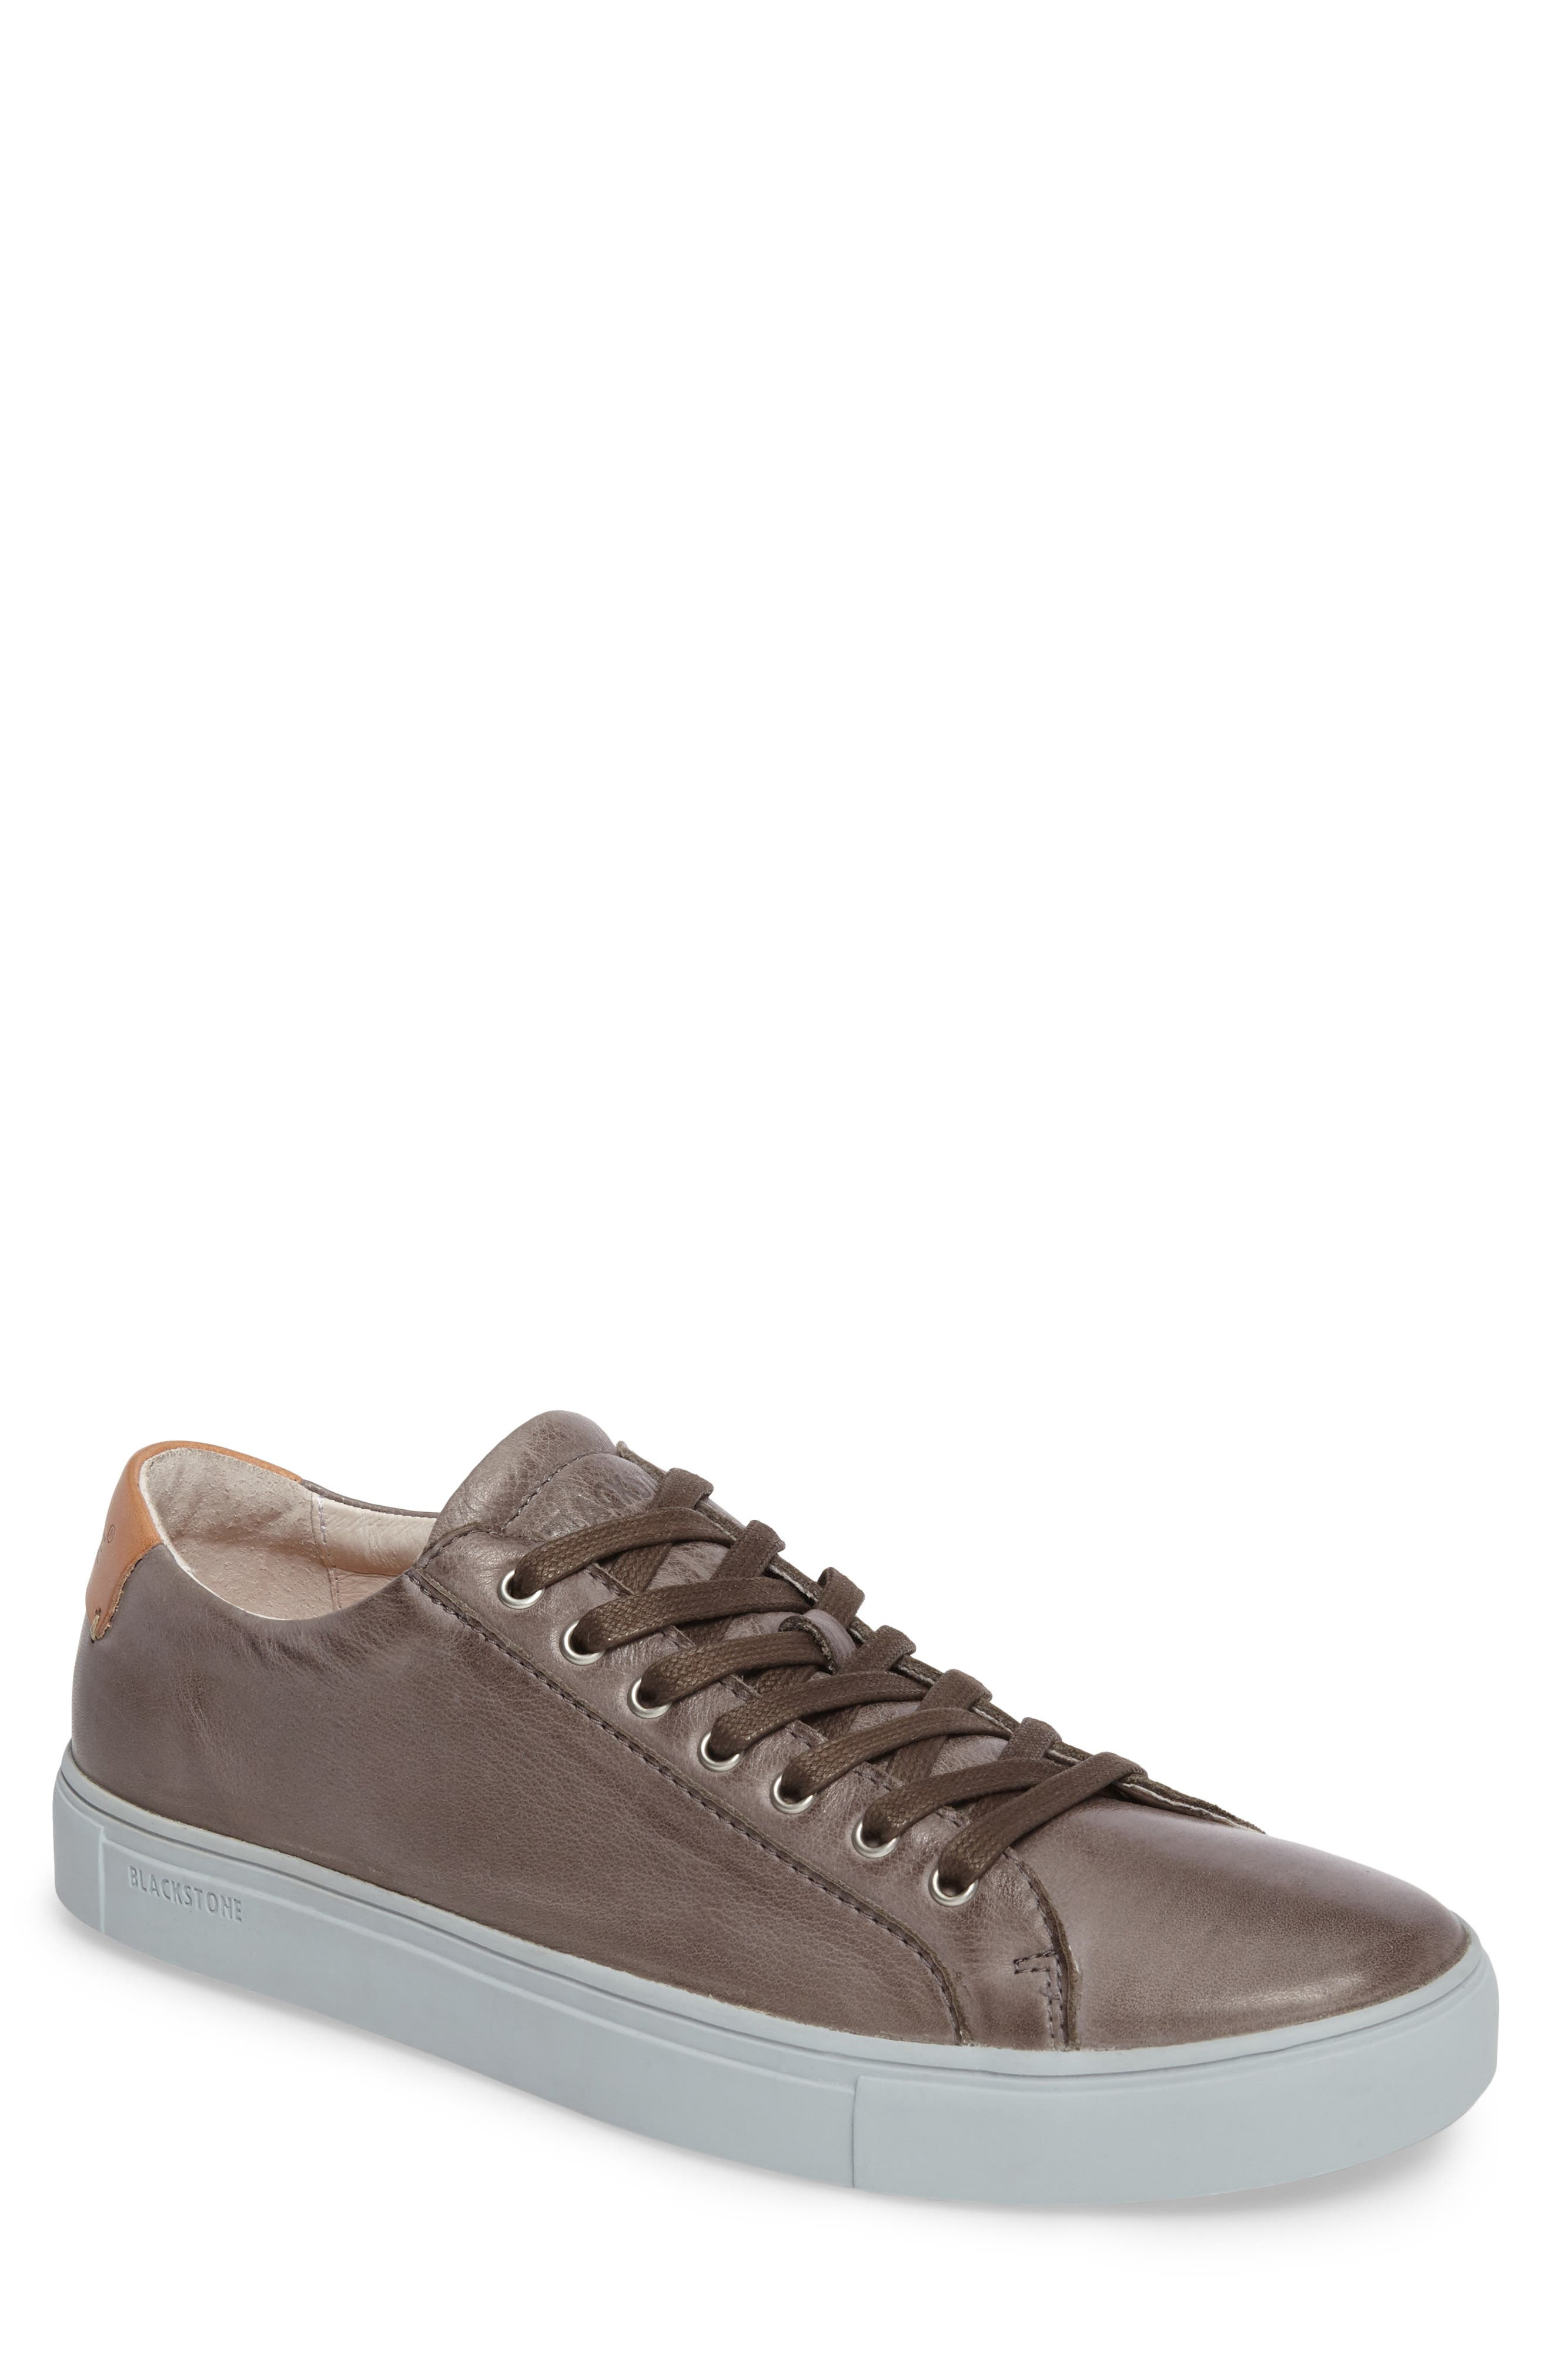 Blackstone NM01 7 Eyelet Sneaker (Men)